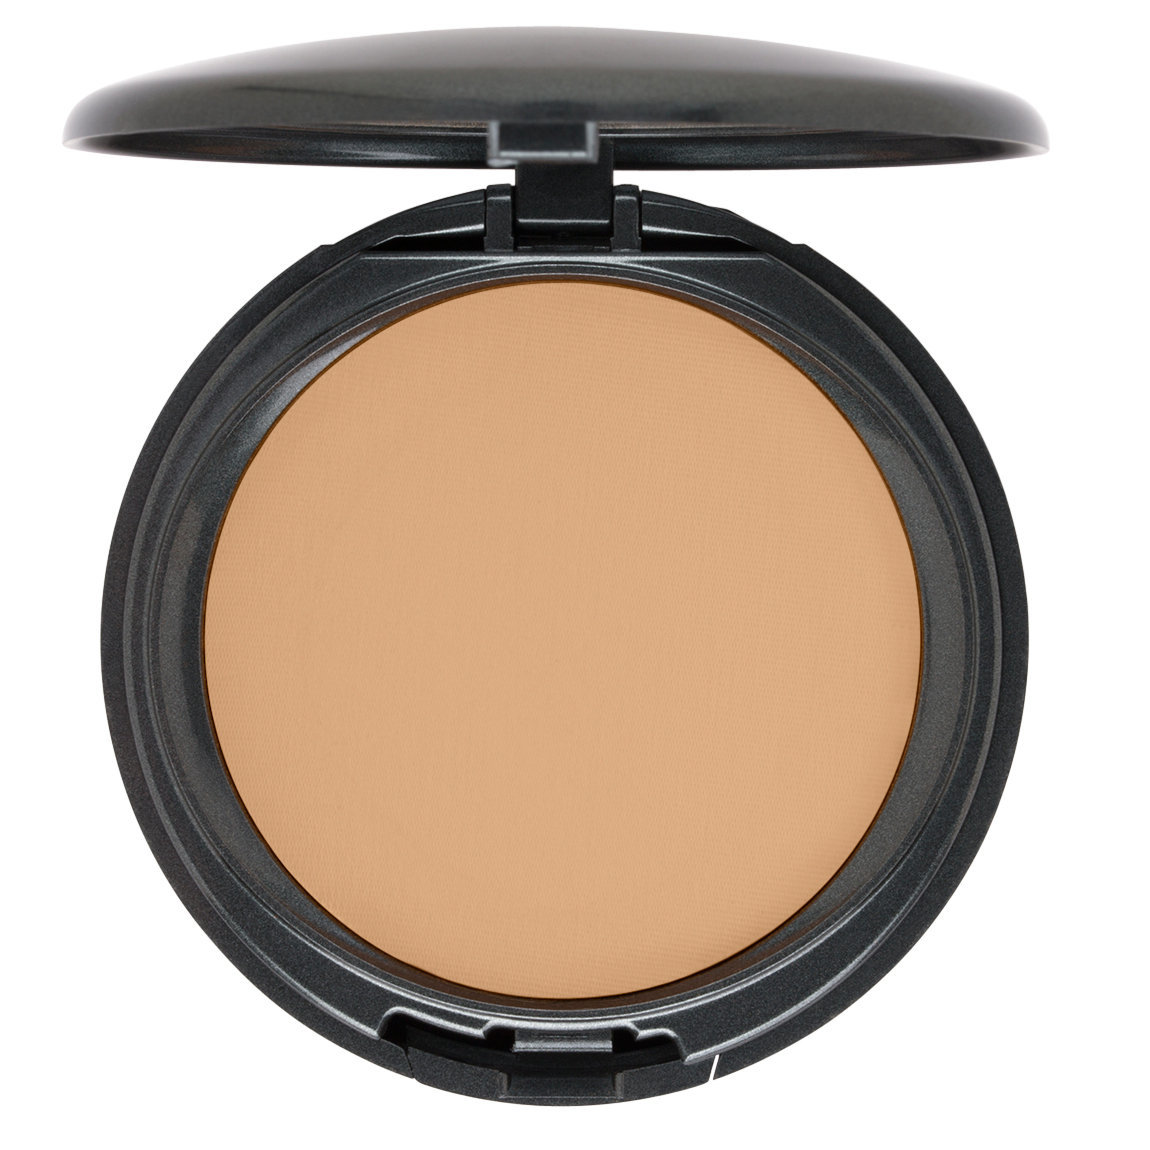 COVER | FX Pressed Mineral Foundation G30 product swatch.